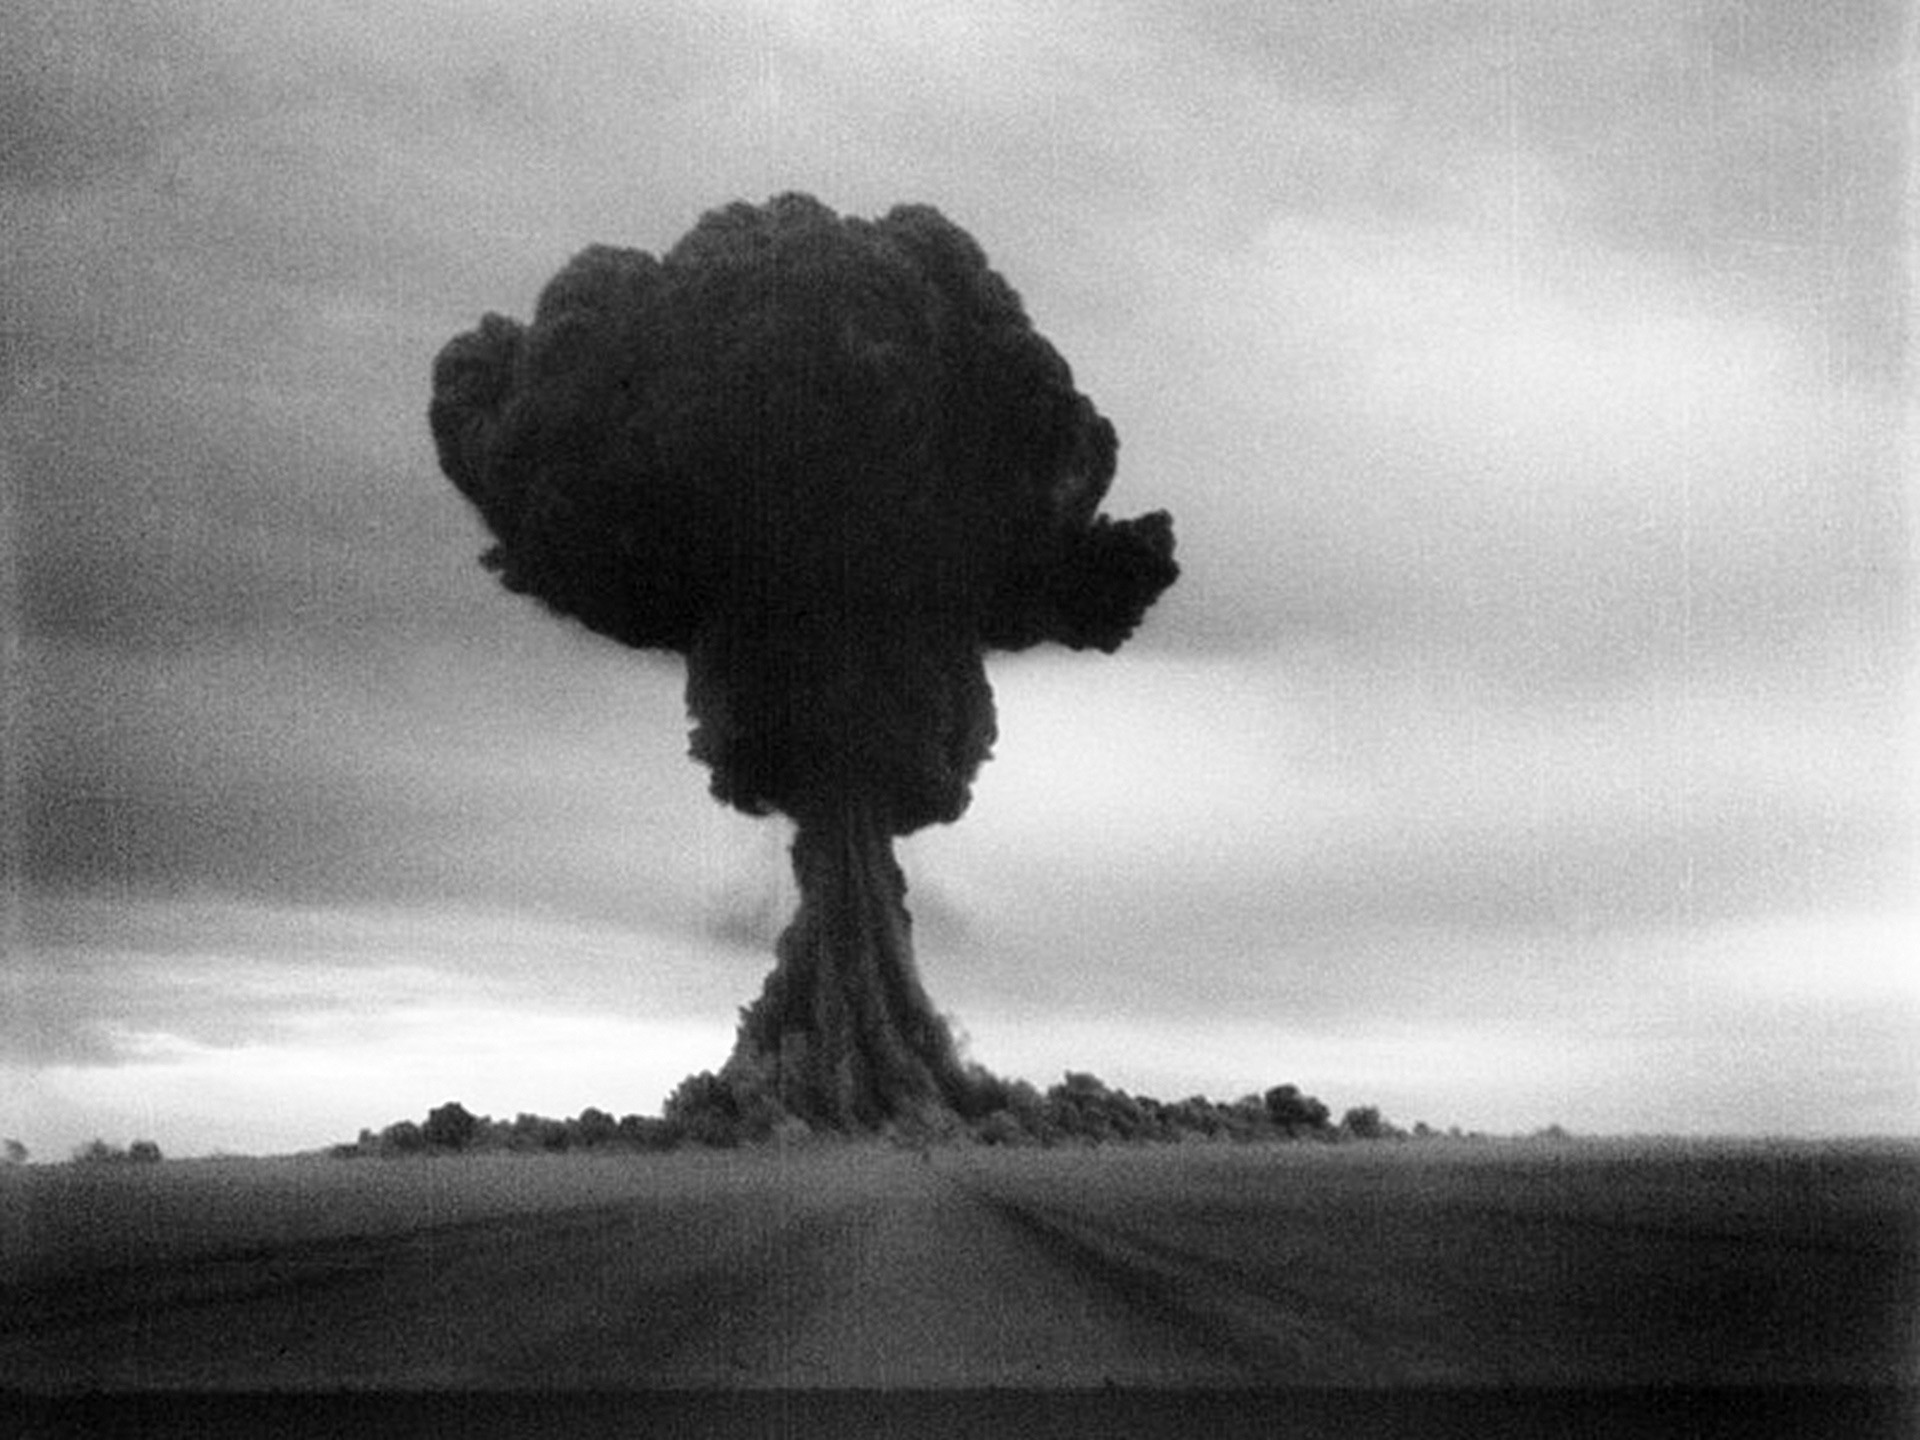 The first Soviet atomic bomb test.